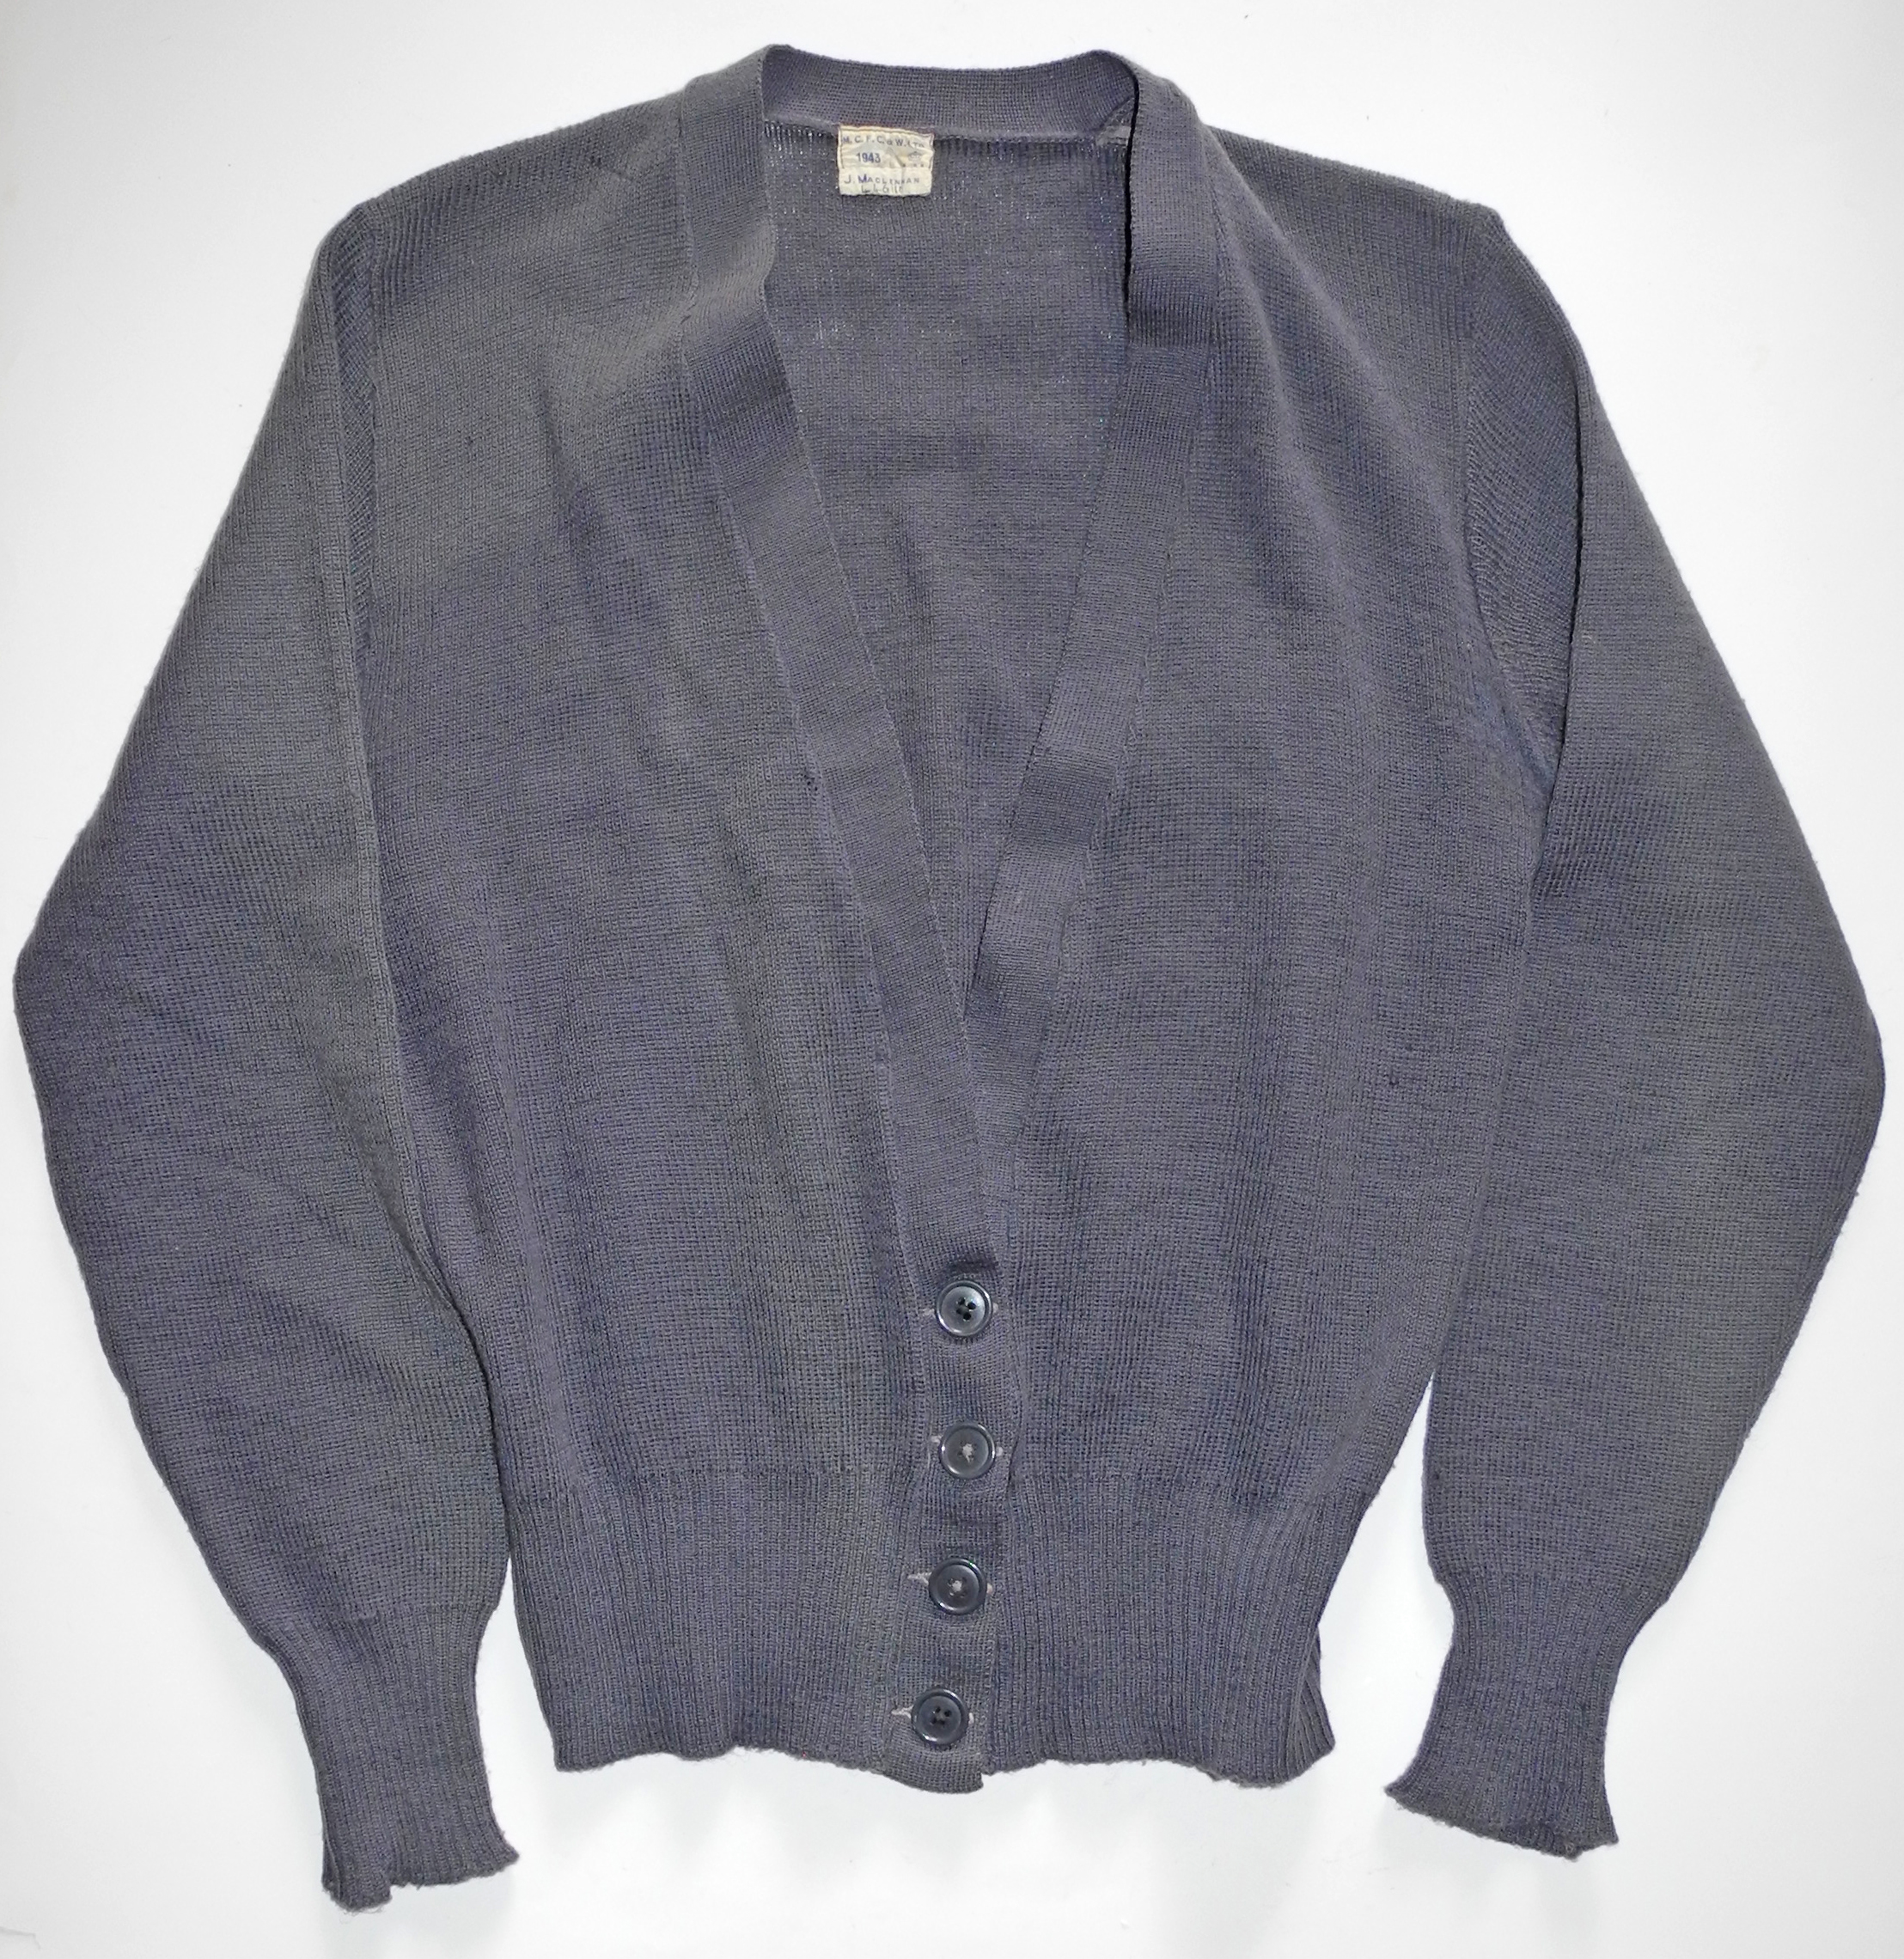 WAAF uniform cardigan, named and dated 1943